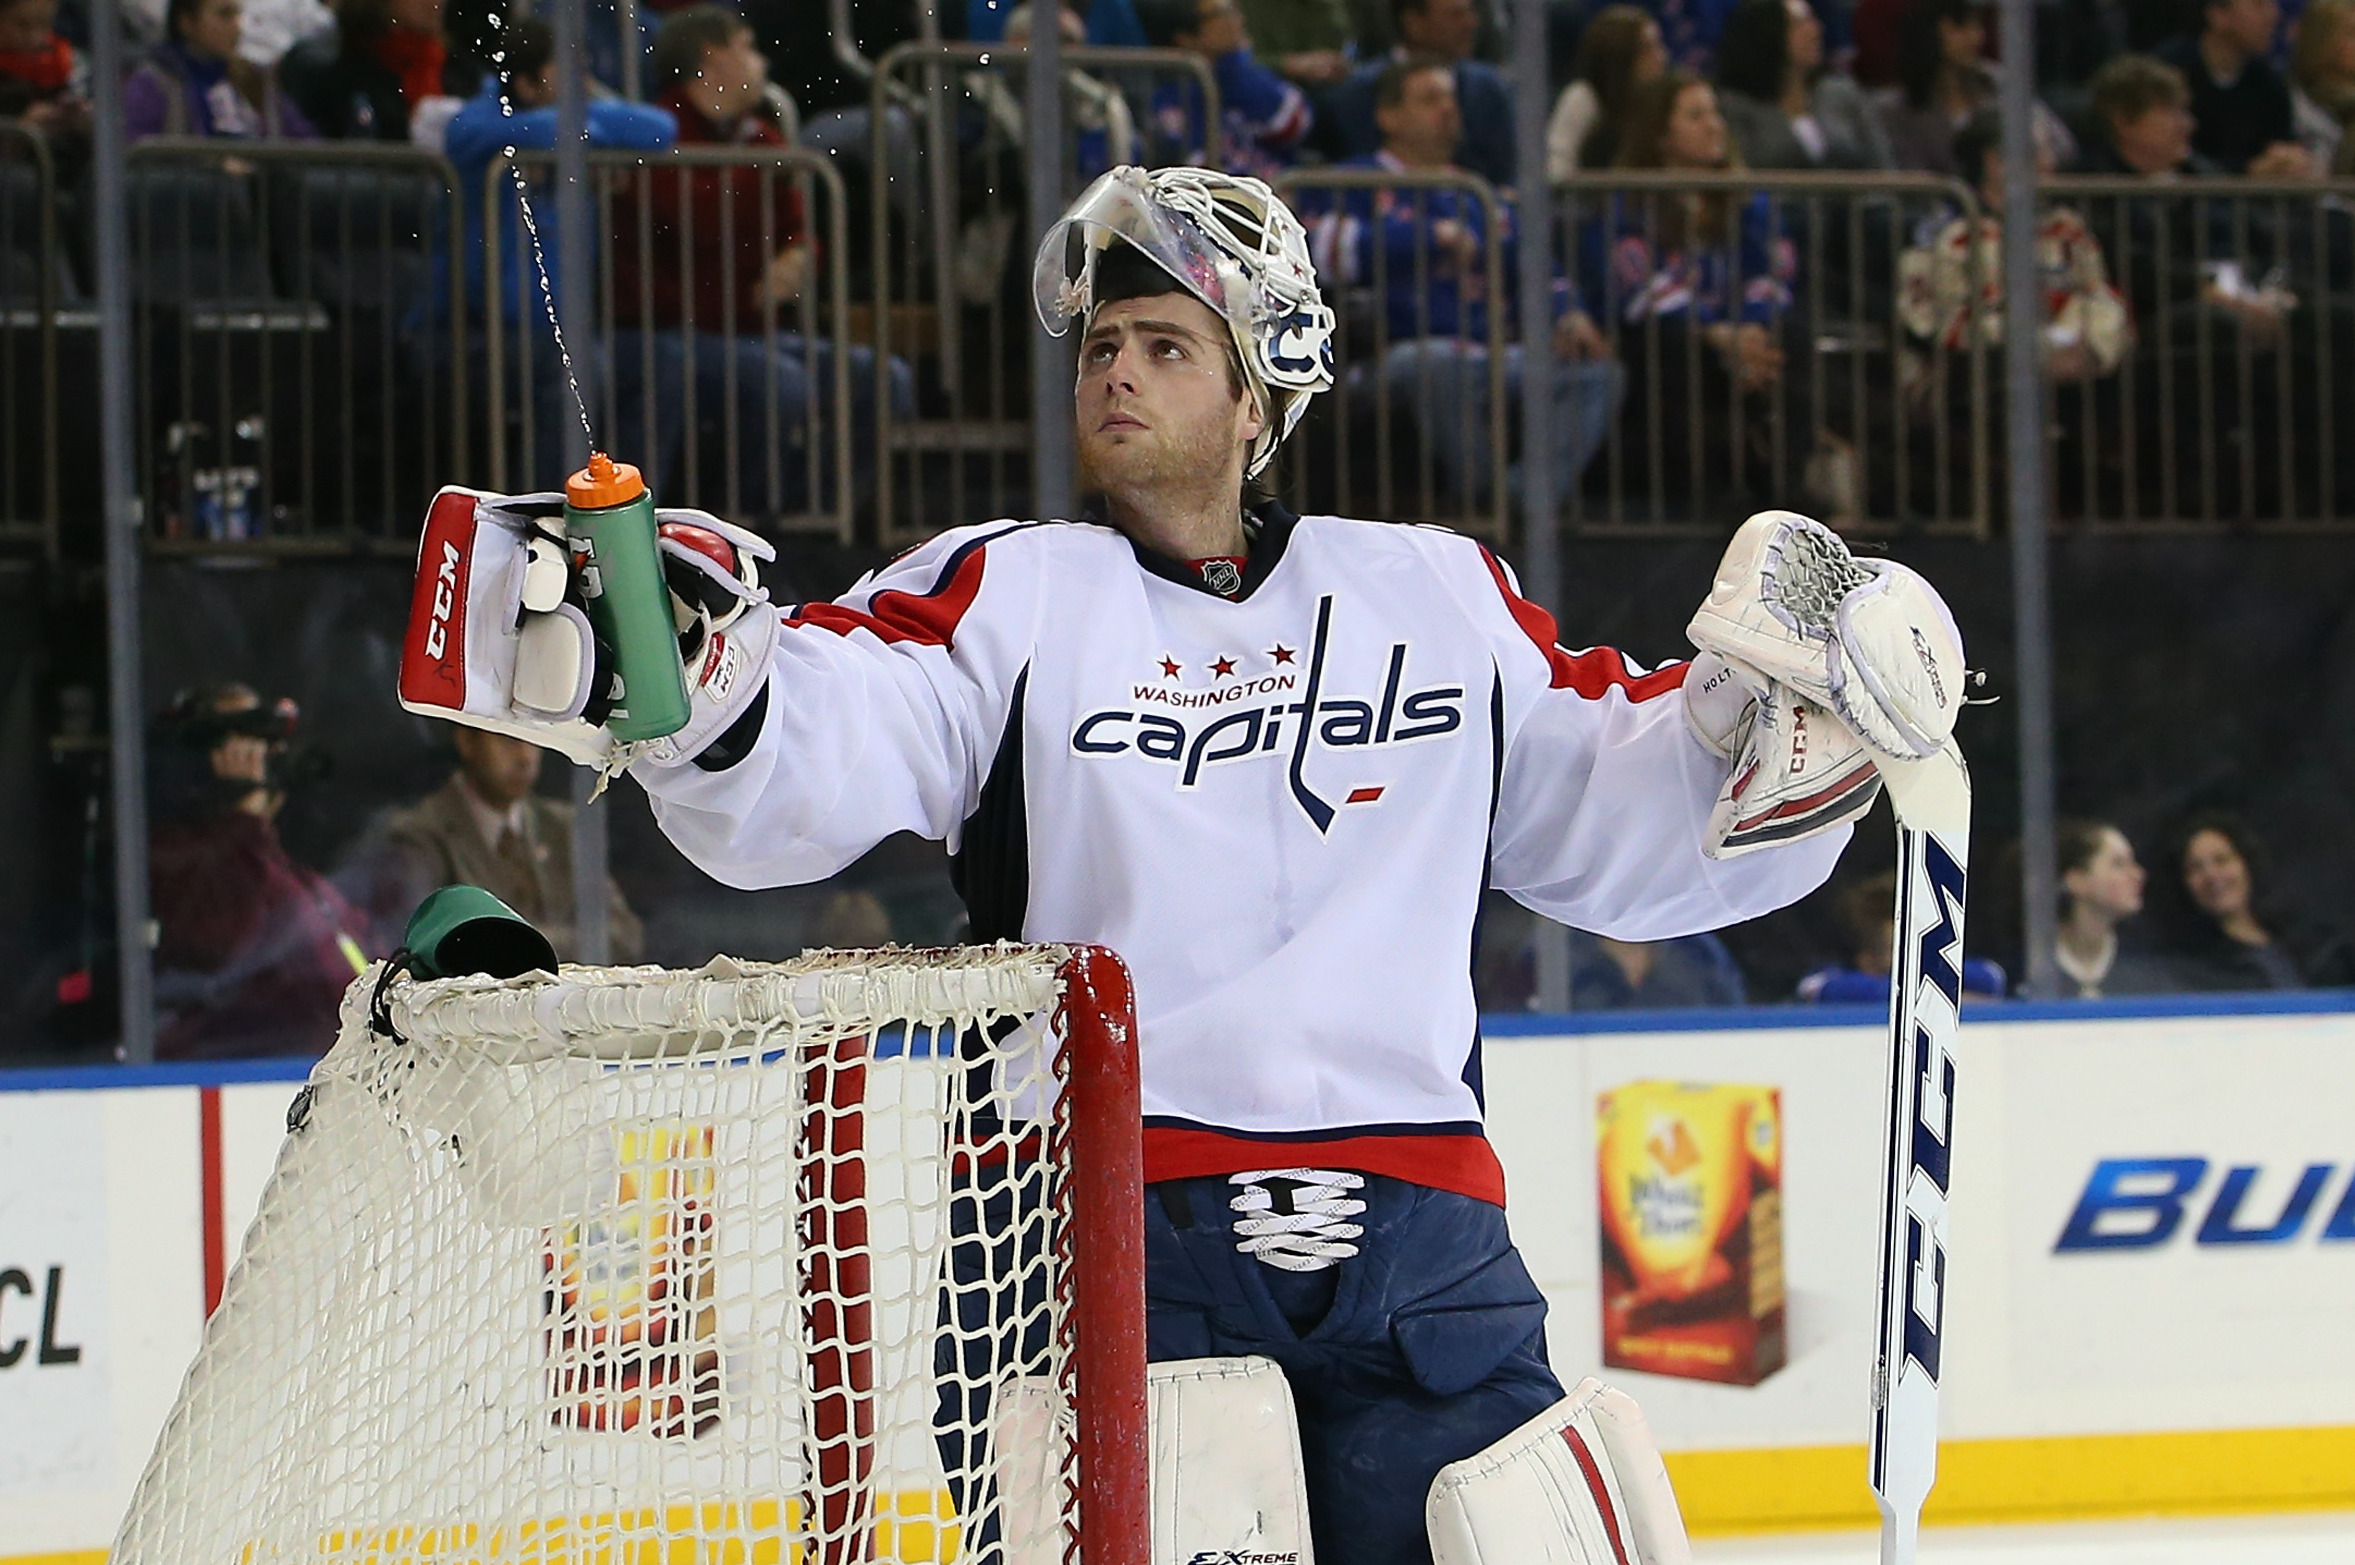 Washington Capitals Why Goalie Braden Holtby Needs To Remain The Man In Net Bleacher Report Latest News Videos And Highlights